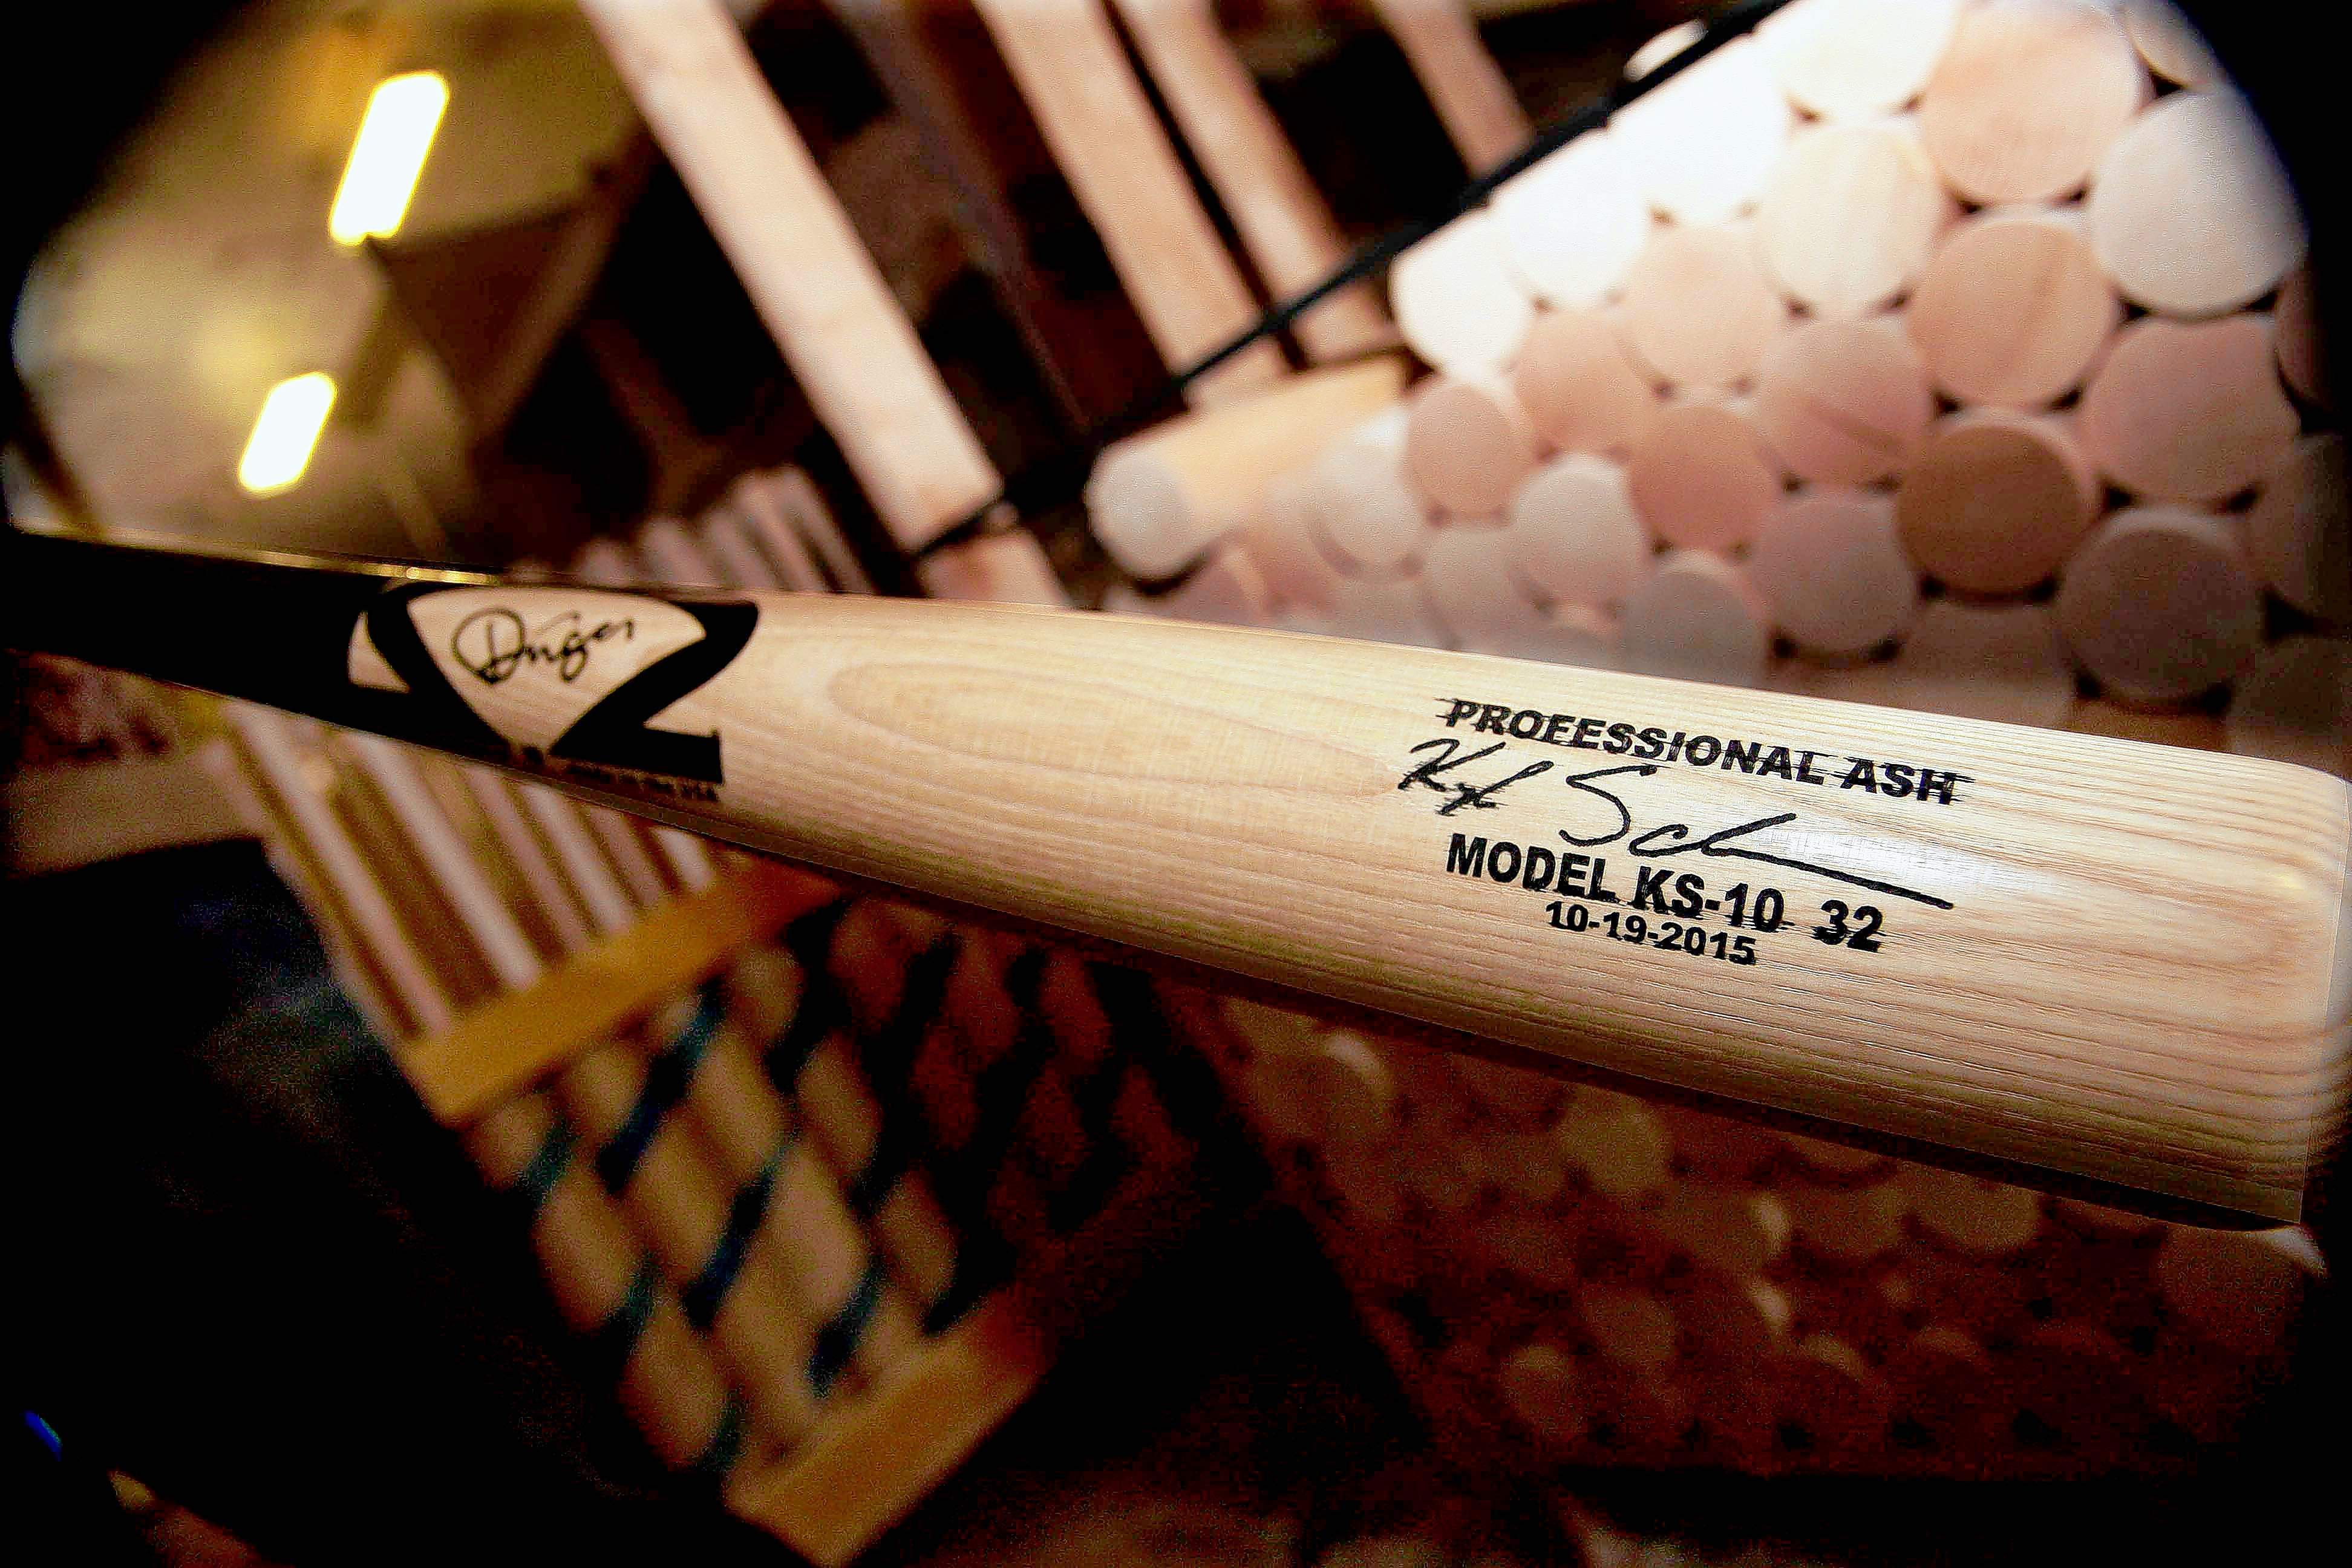 A model KS-10 bat like the ones swung by Chicago Cubs outfielder Kyle Schwarber.